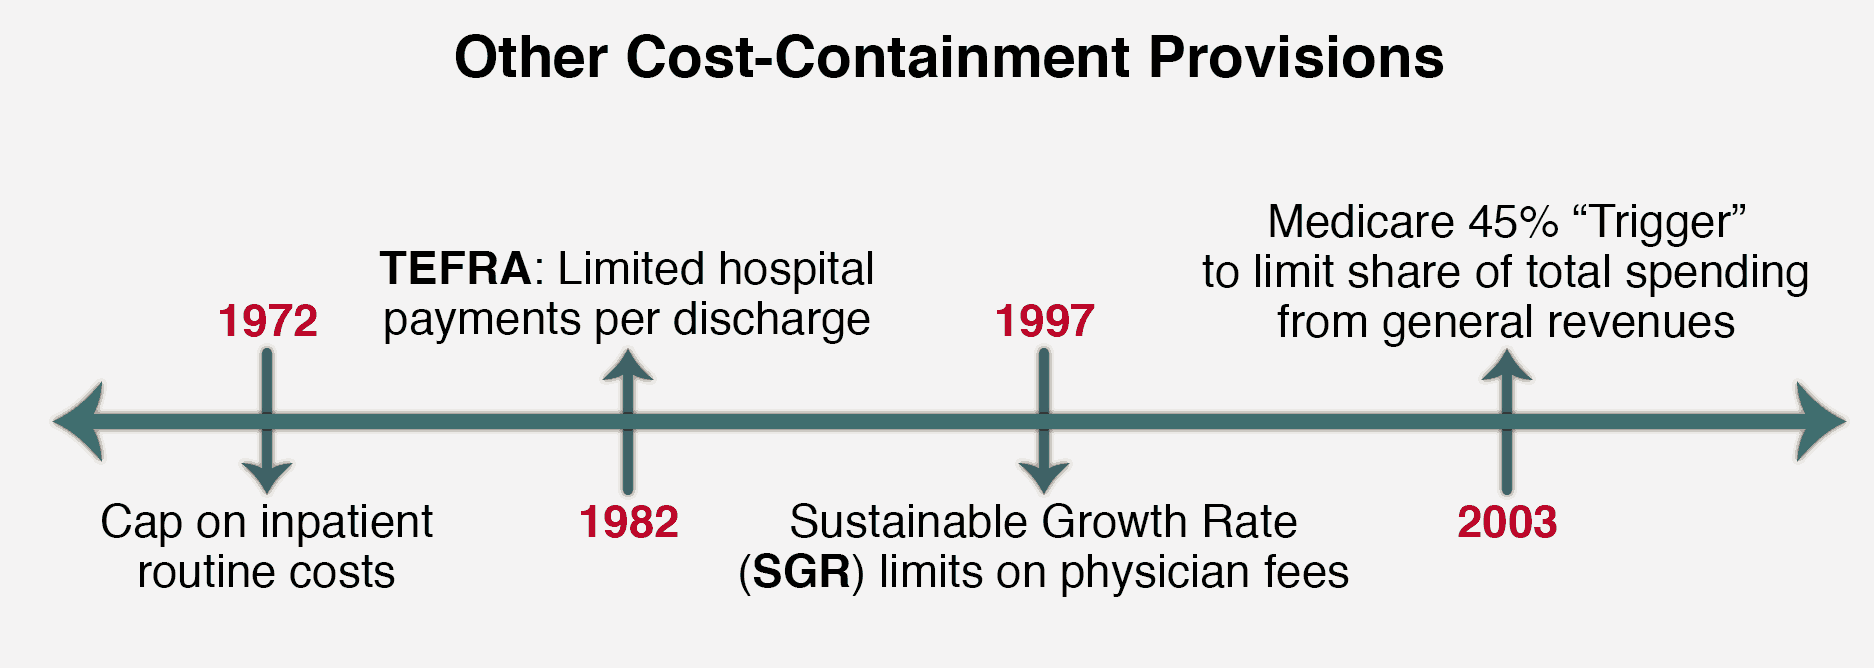 Medicare Cost Provisions